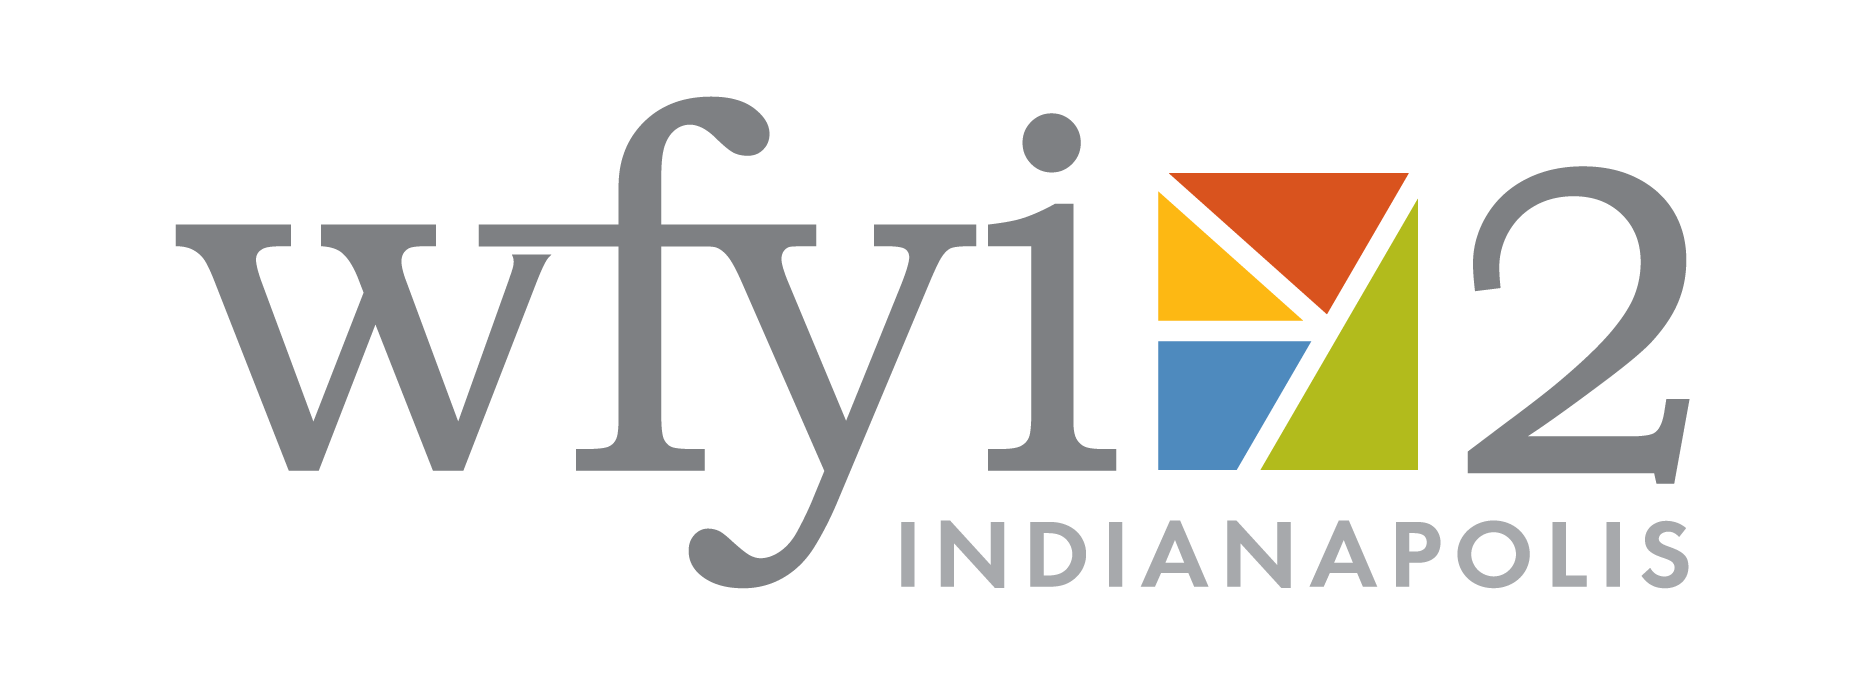 View The Wfyi Pbs And Npr Broadcast Schedules Wfyi Indianapolis